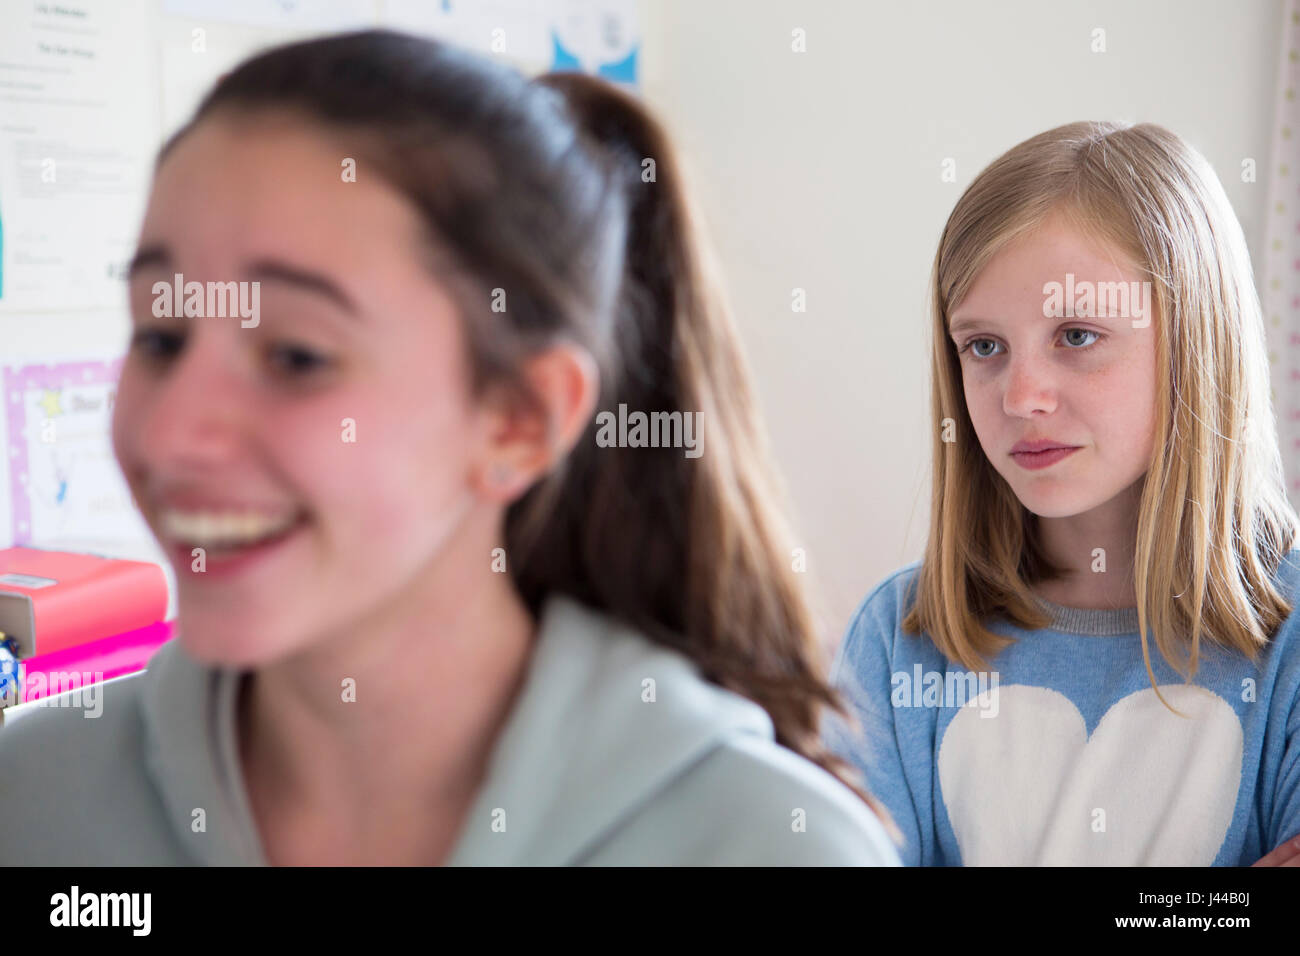 Young Girl Staring At Disliked Friend - Stock Image